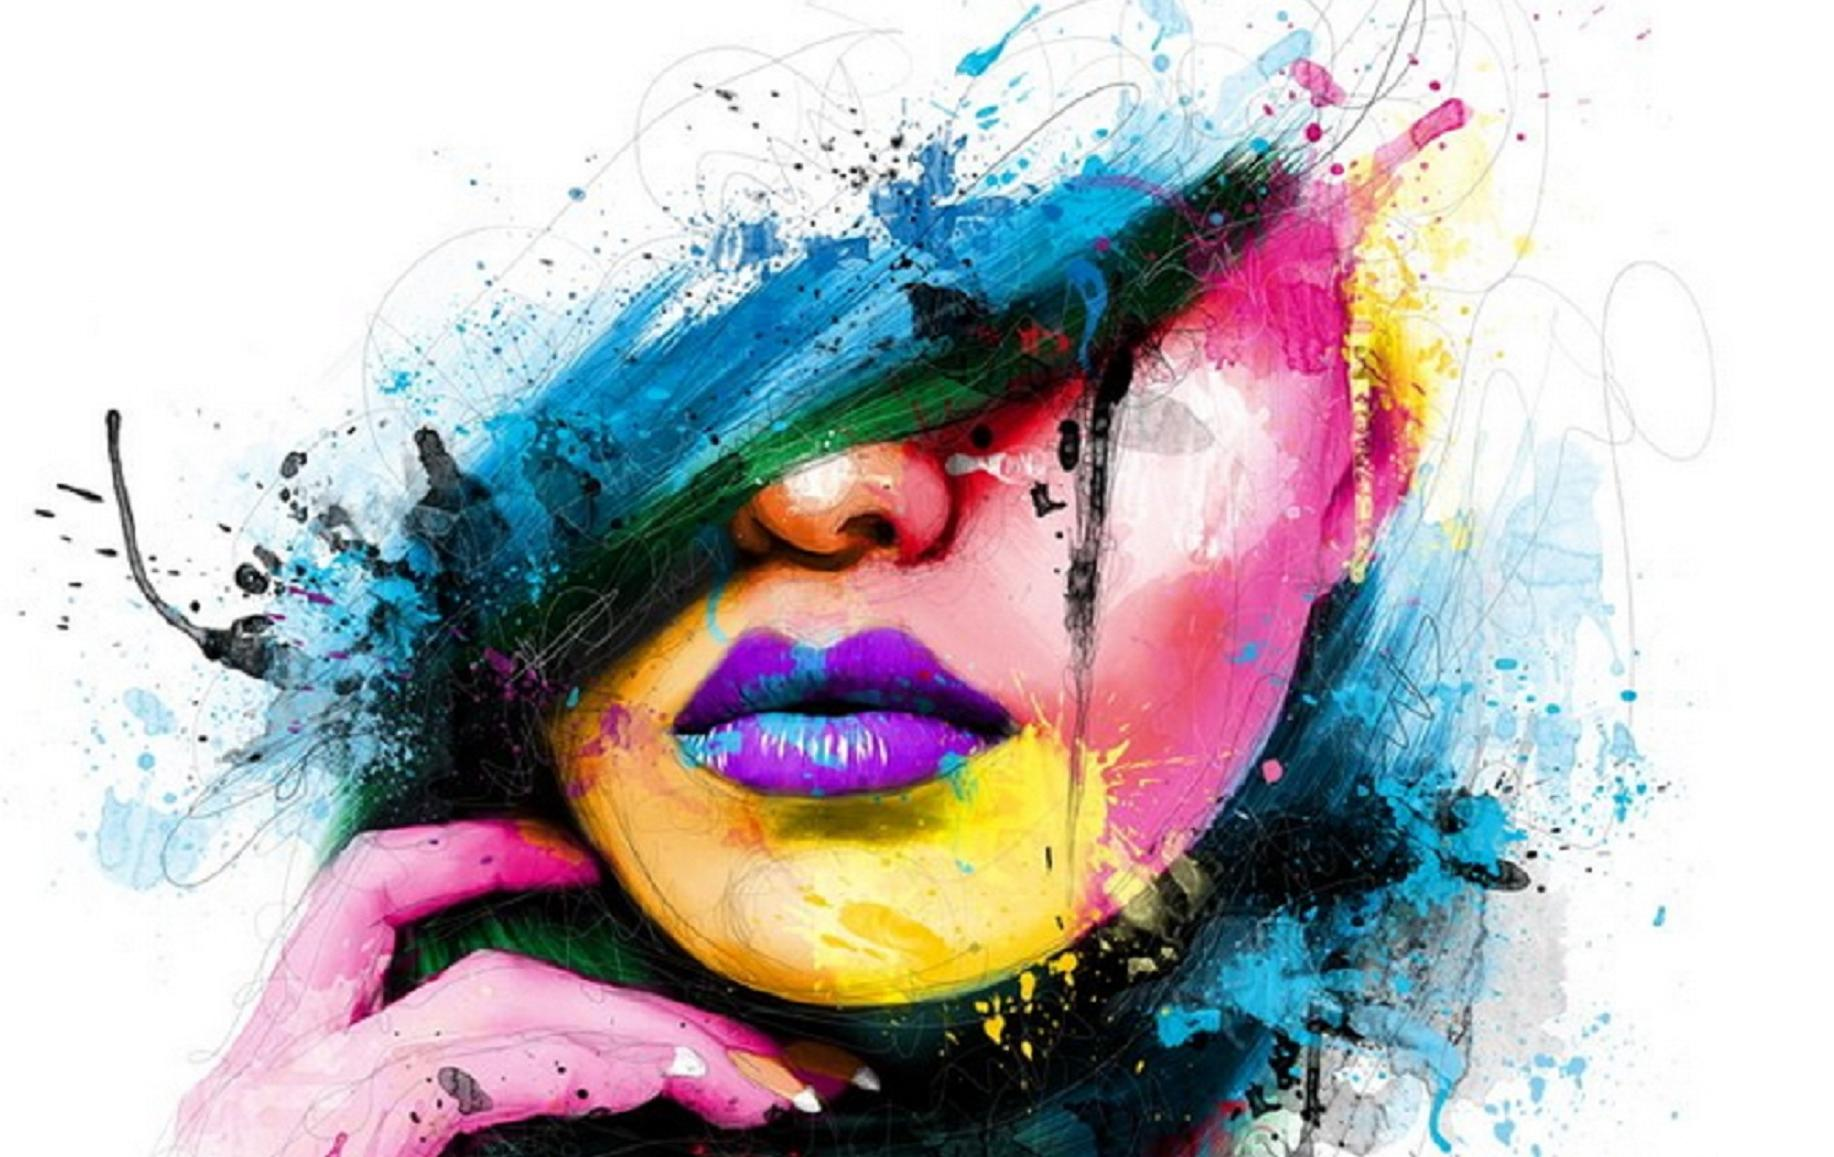 Beautiful Abstract Face Painting Woman Girl Hd Wallpaper 1572933